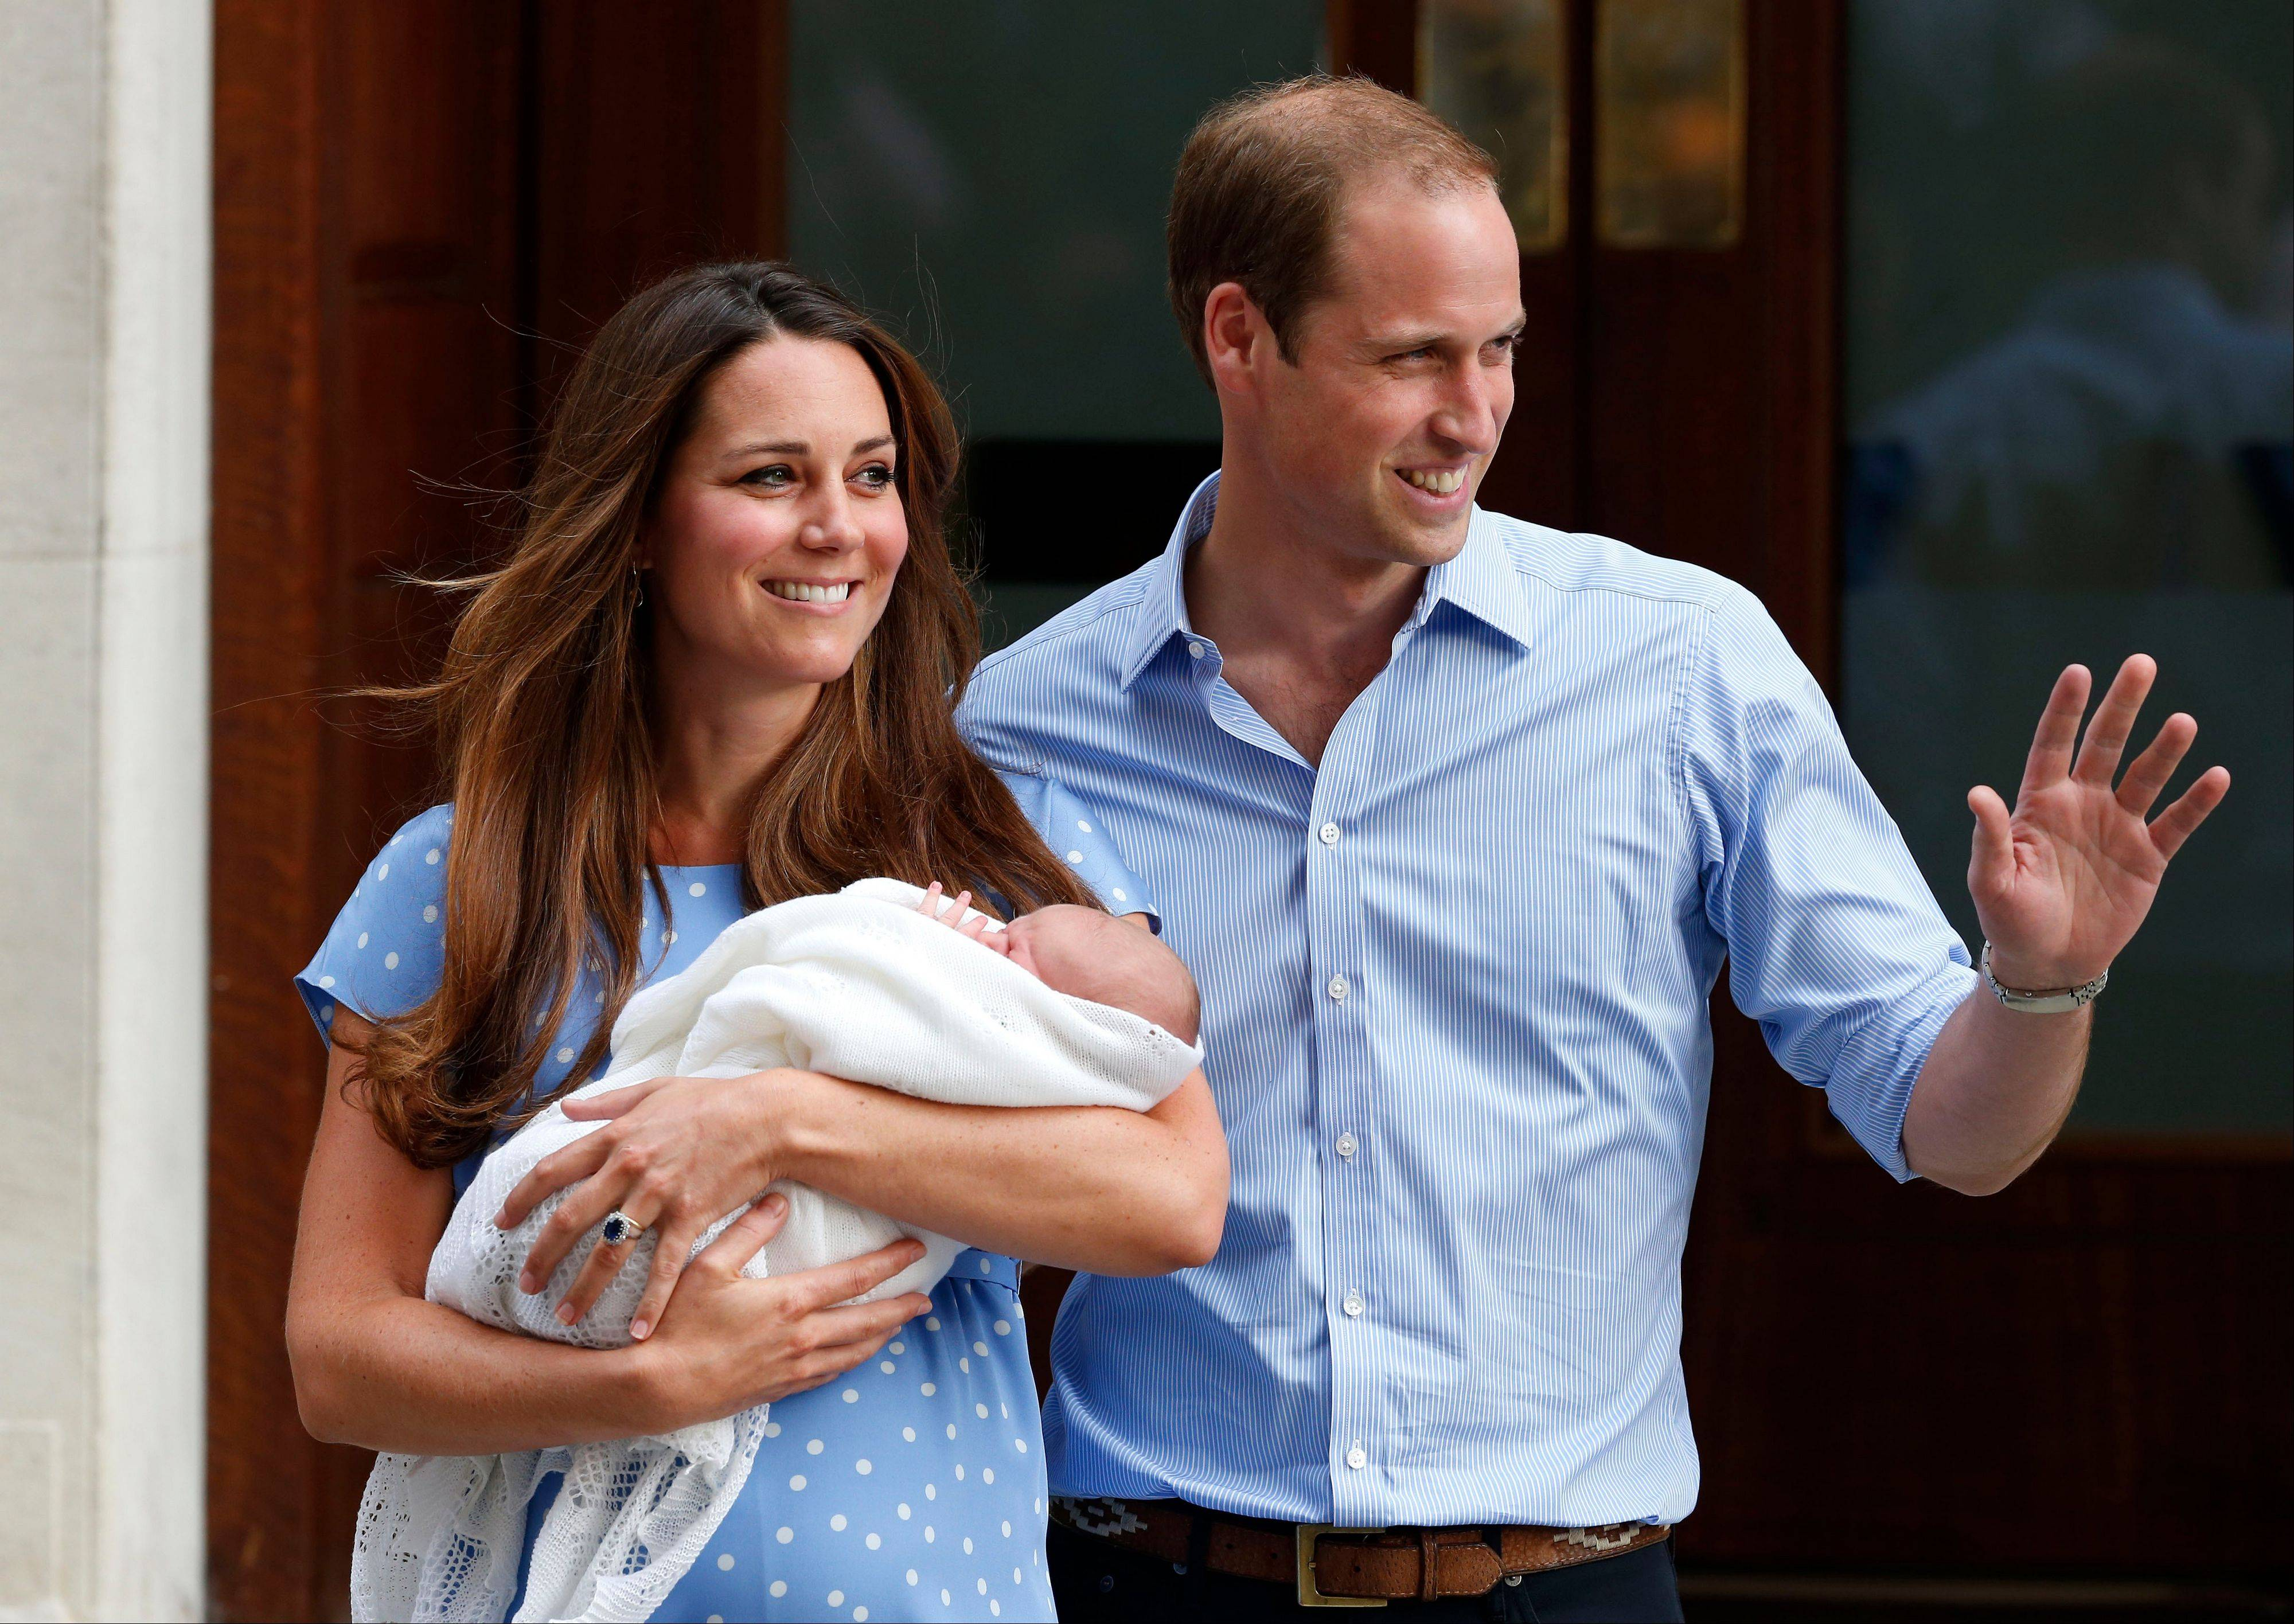 Britain's Prince William and Kate, Duchess of Cambridge hold the Prince of Cambridge, Tuesday as they pose for photographers outside St. Mary's Hospital exclusive Lindo Wing in London where the Duchess gave birth on Monday.